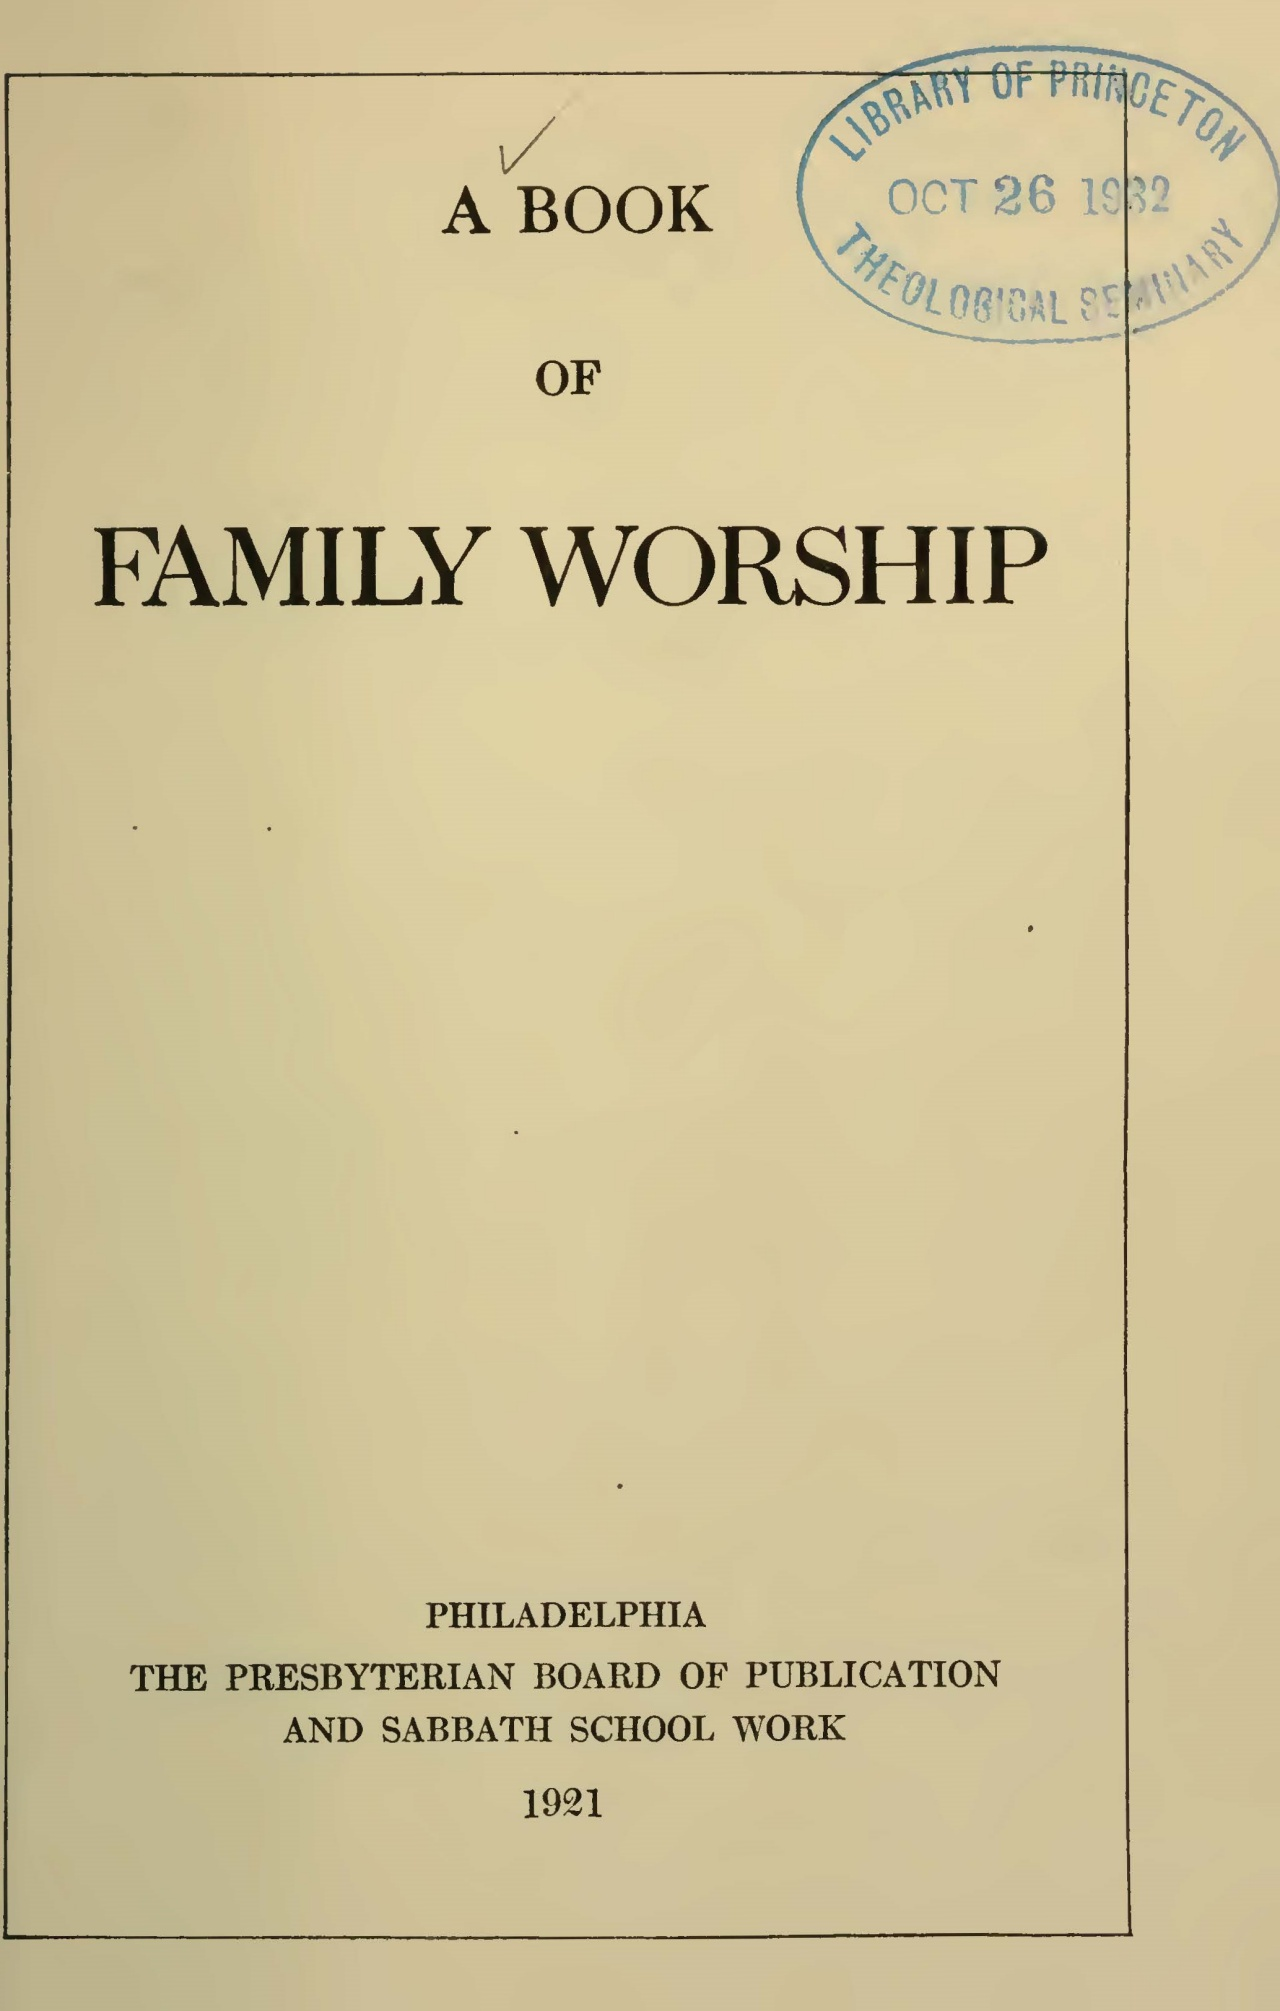 Benson, Louis FitzGerald, A Book of Family Worship Title Page.jpg